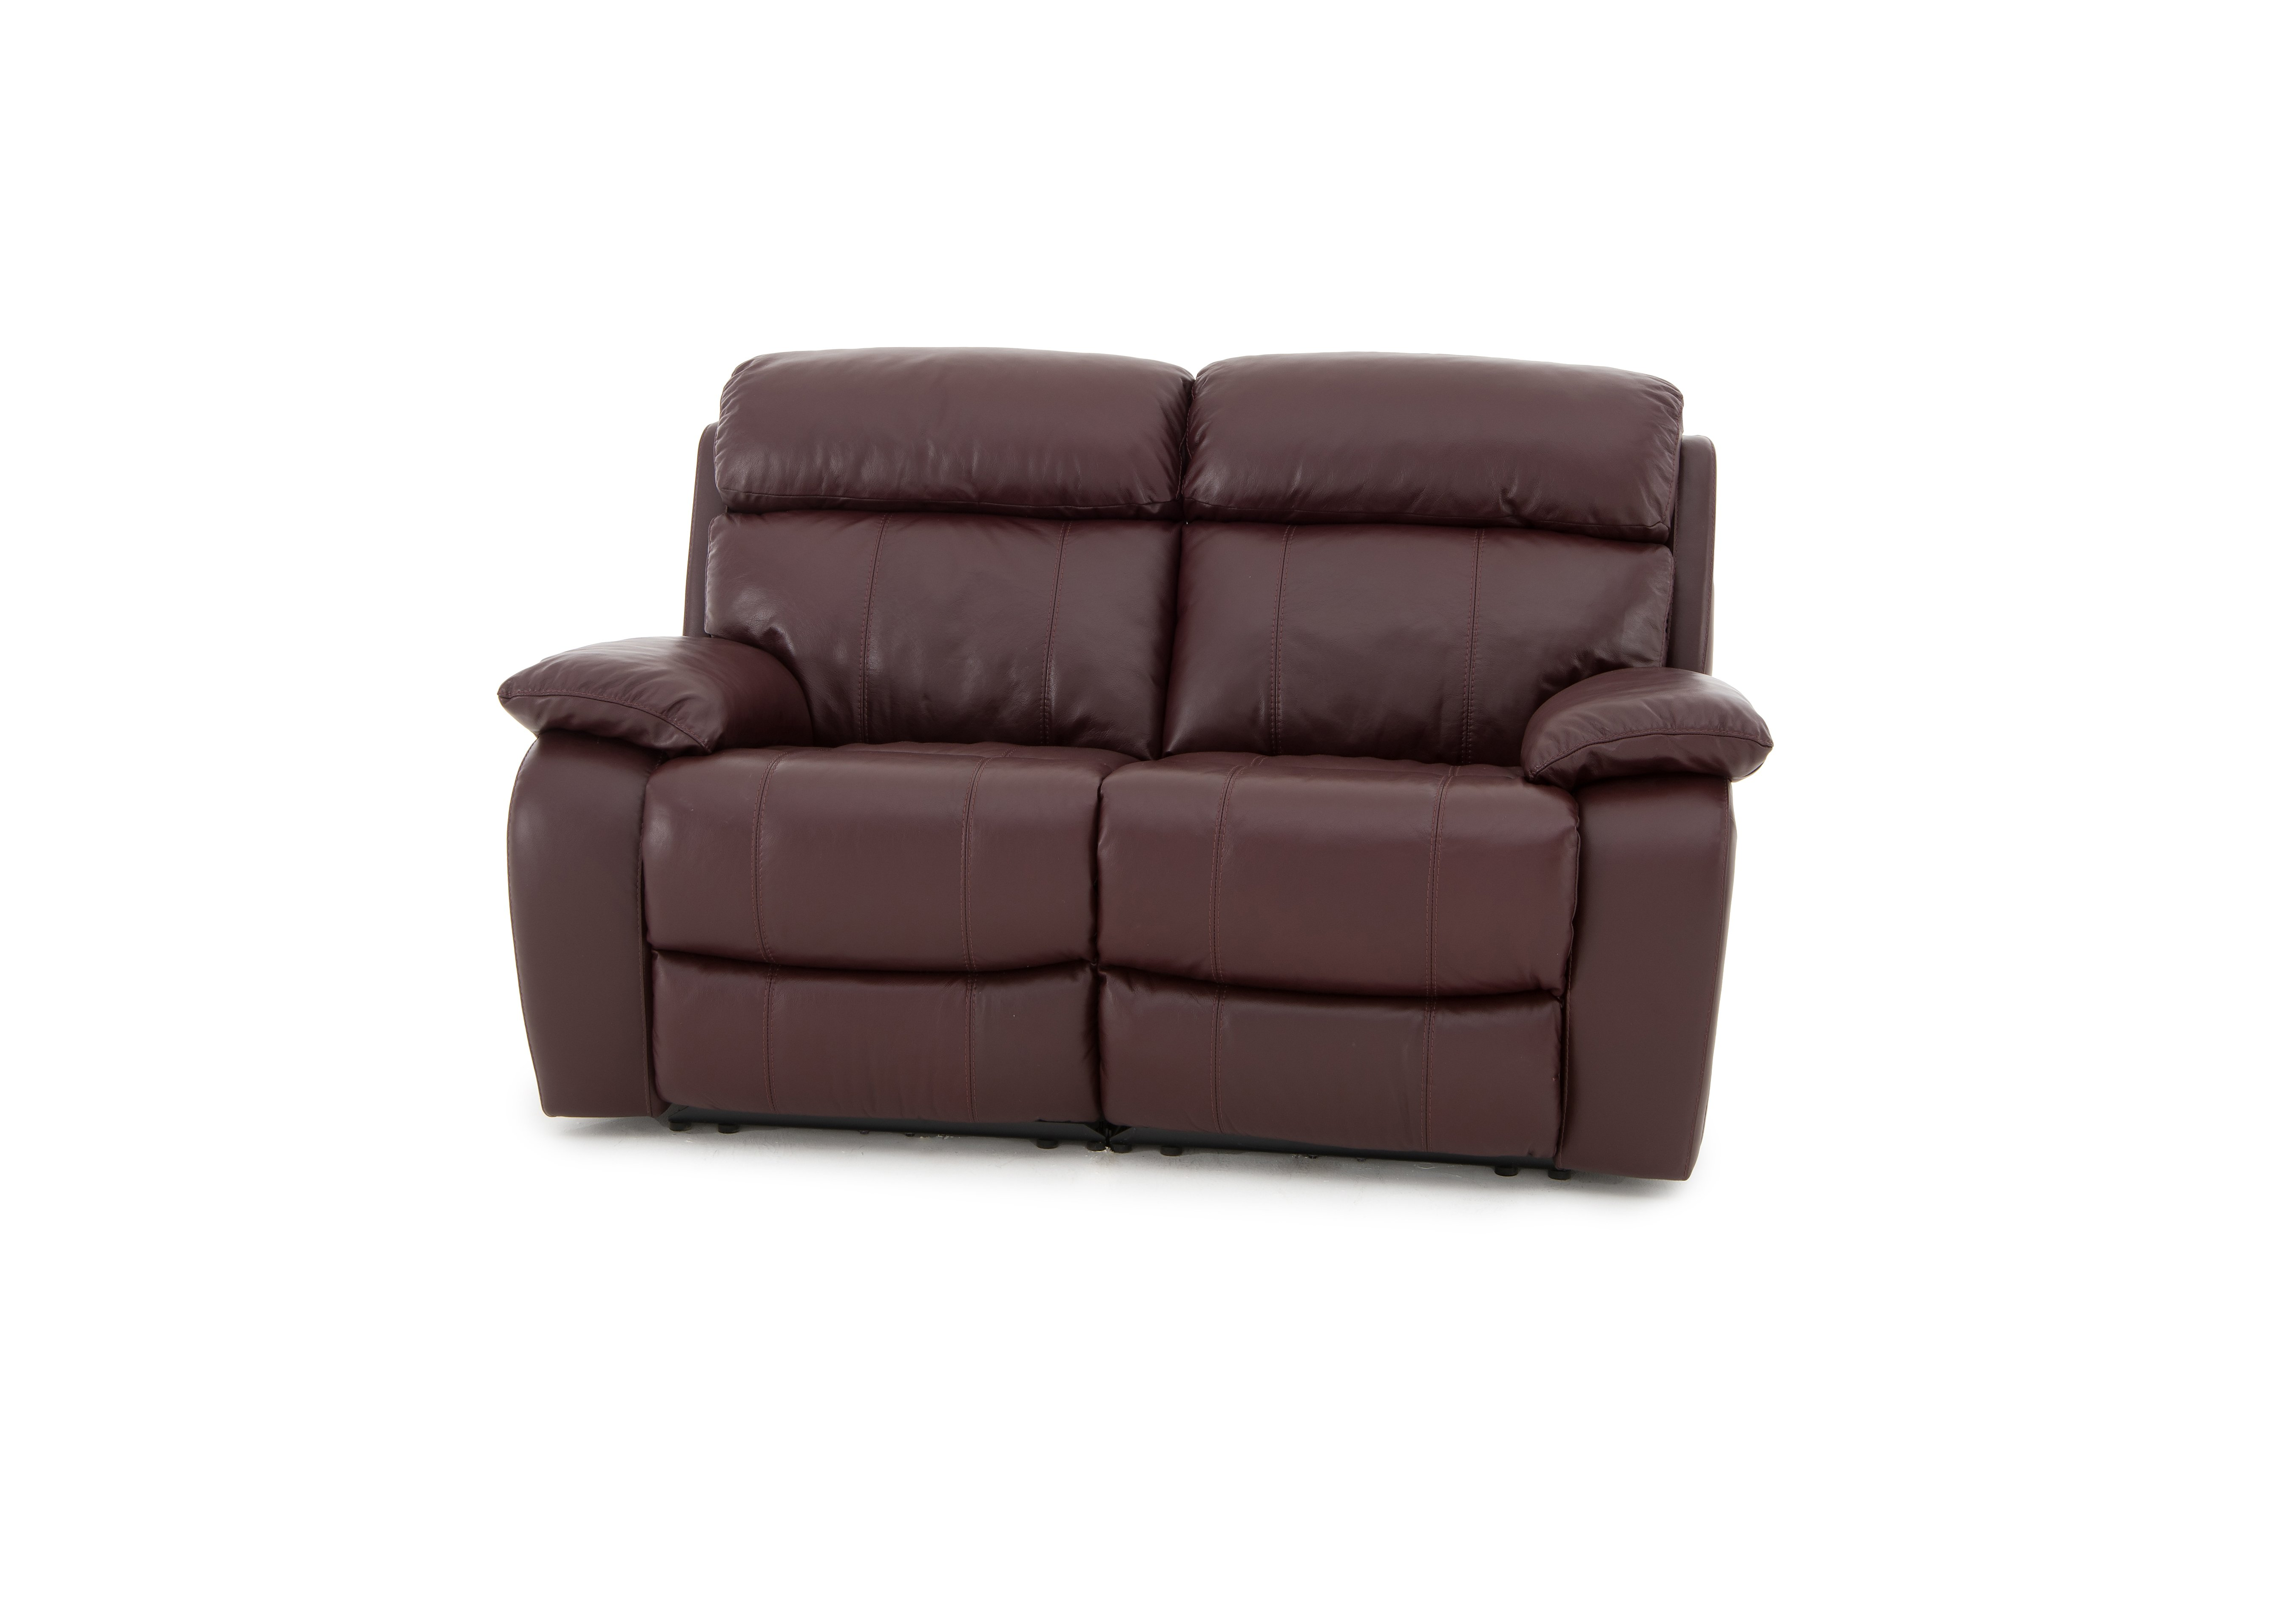 Moreno 2 Seater Leather Recliner Sofa World Of Leather